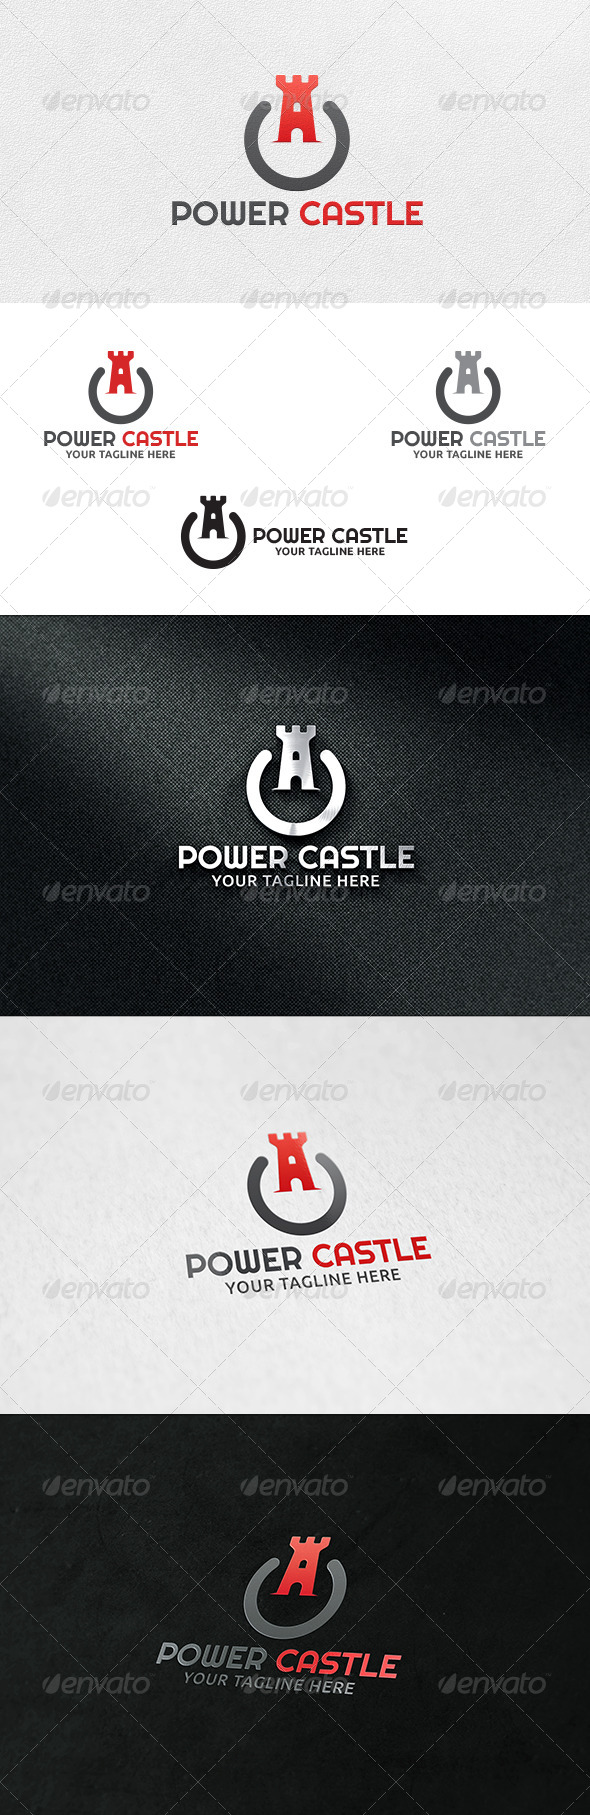 Power Castle Logo Template